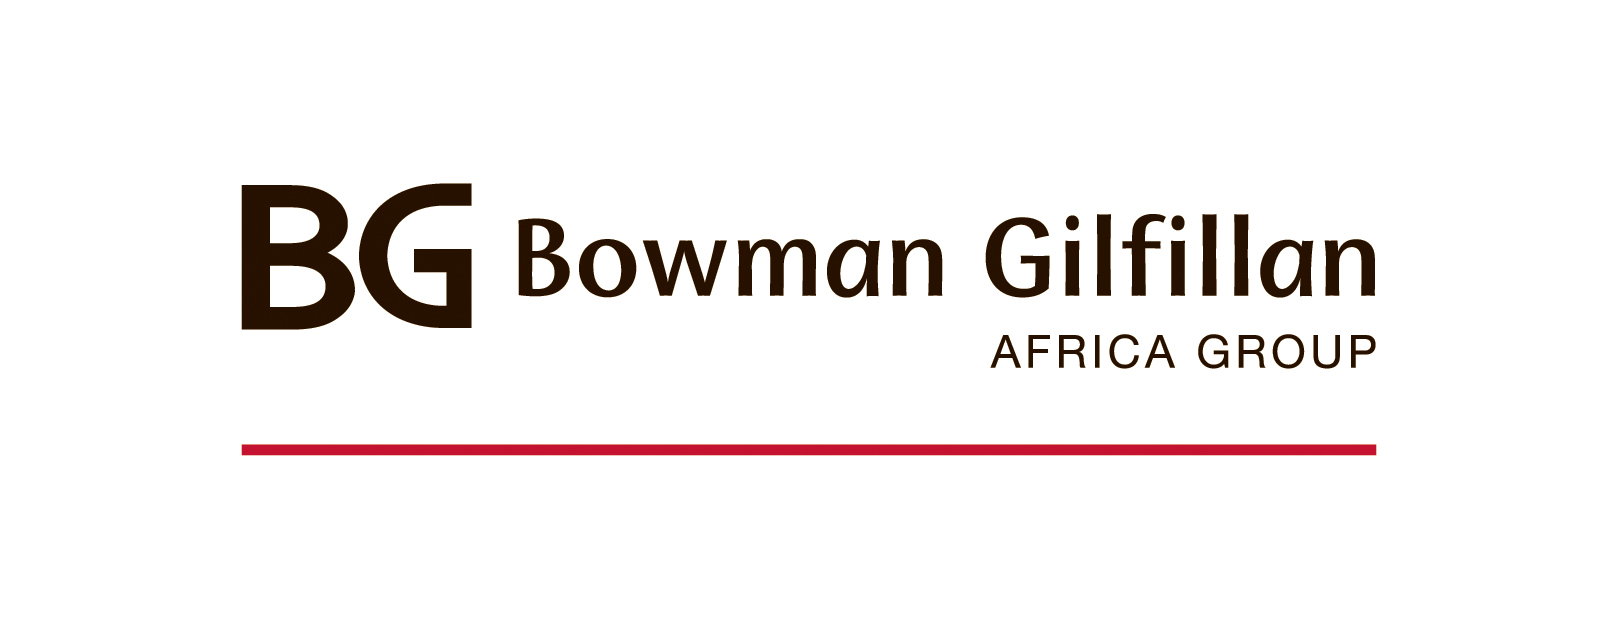 Bowman Gilfillan Africa Group